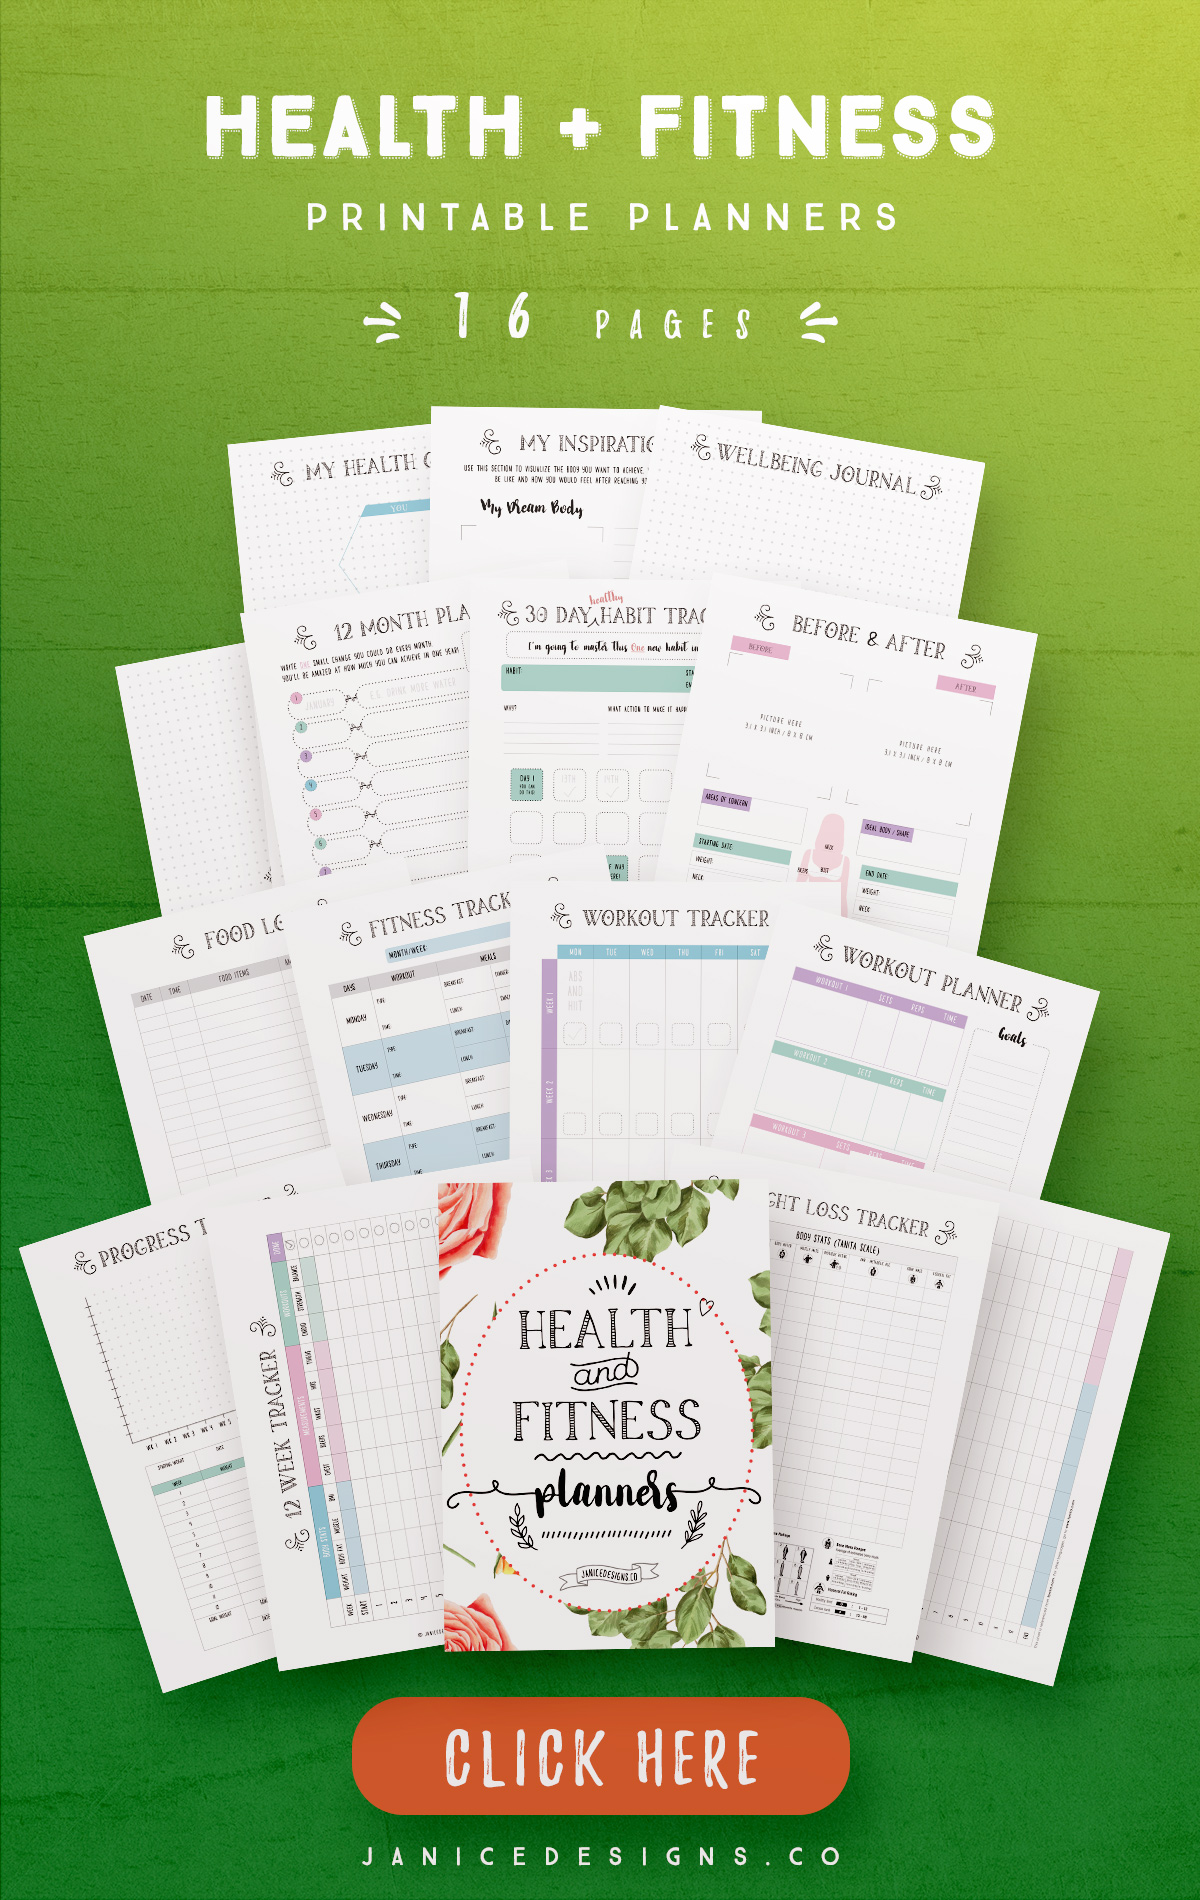 Health and Fitness Printable Planners - 16 Pages example image 2